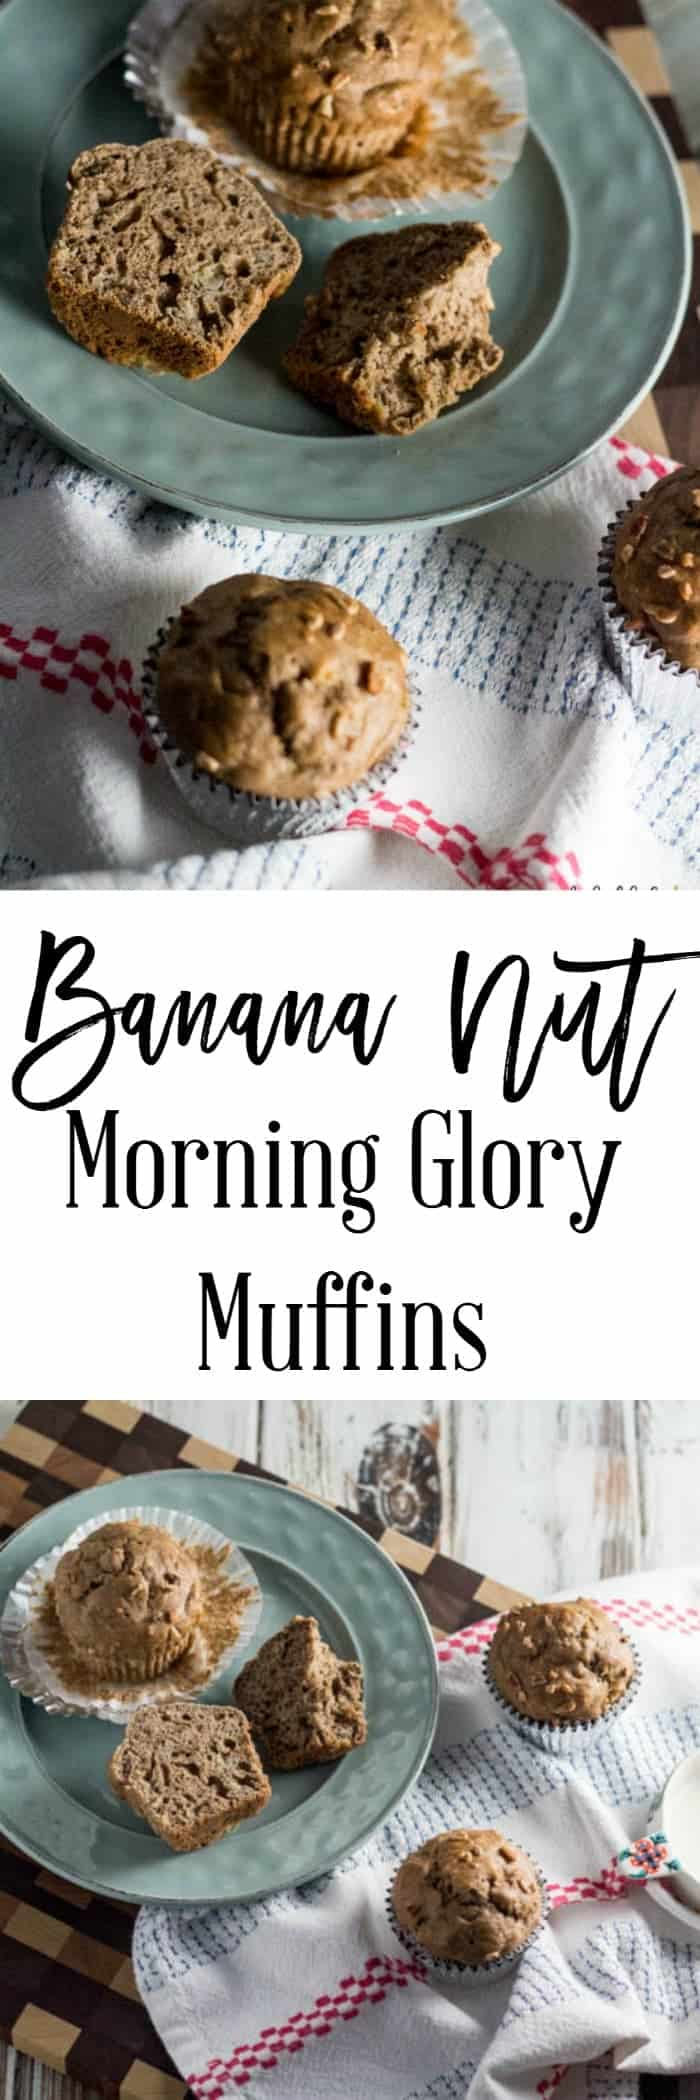 Banana Nut Morning Glory Muffins - A delicious grab and go breakfast recipe when you are in a hurry.  Only 4 SmartPoints per serving (1 muffin) on Weight Watchers.